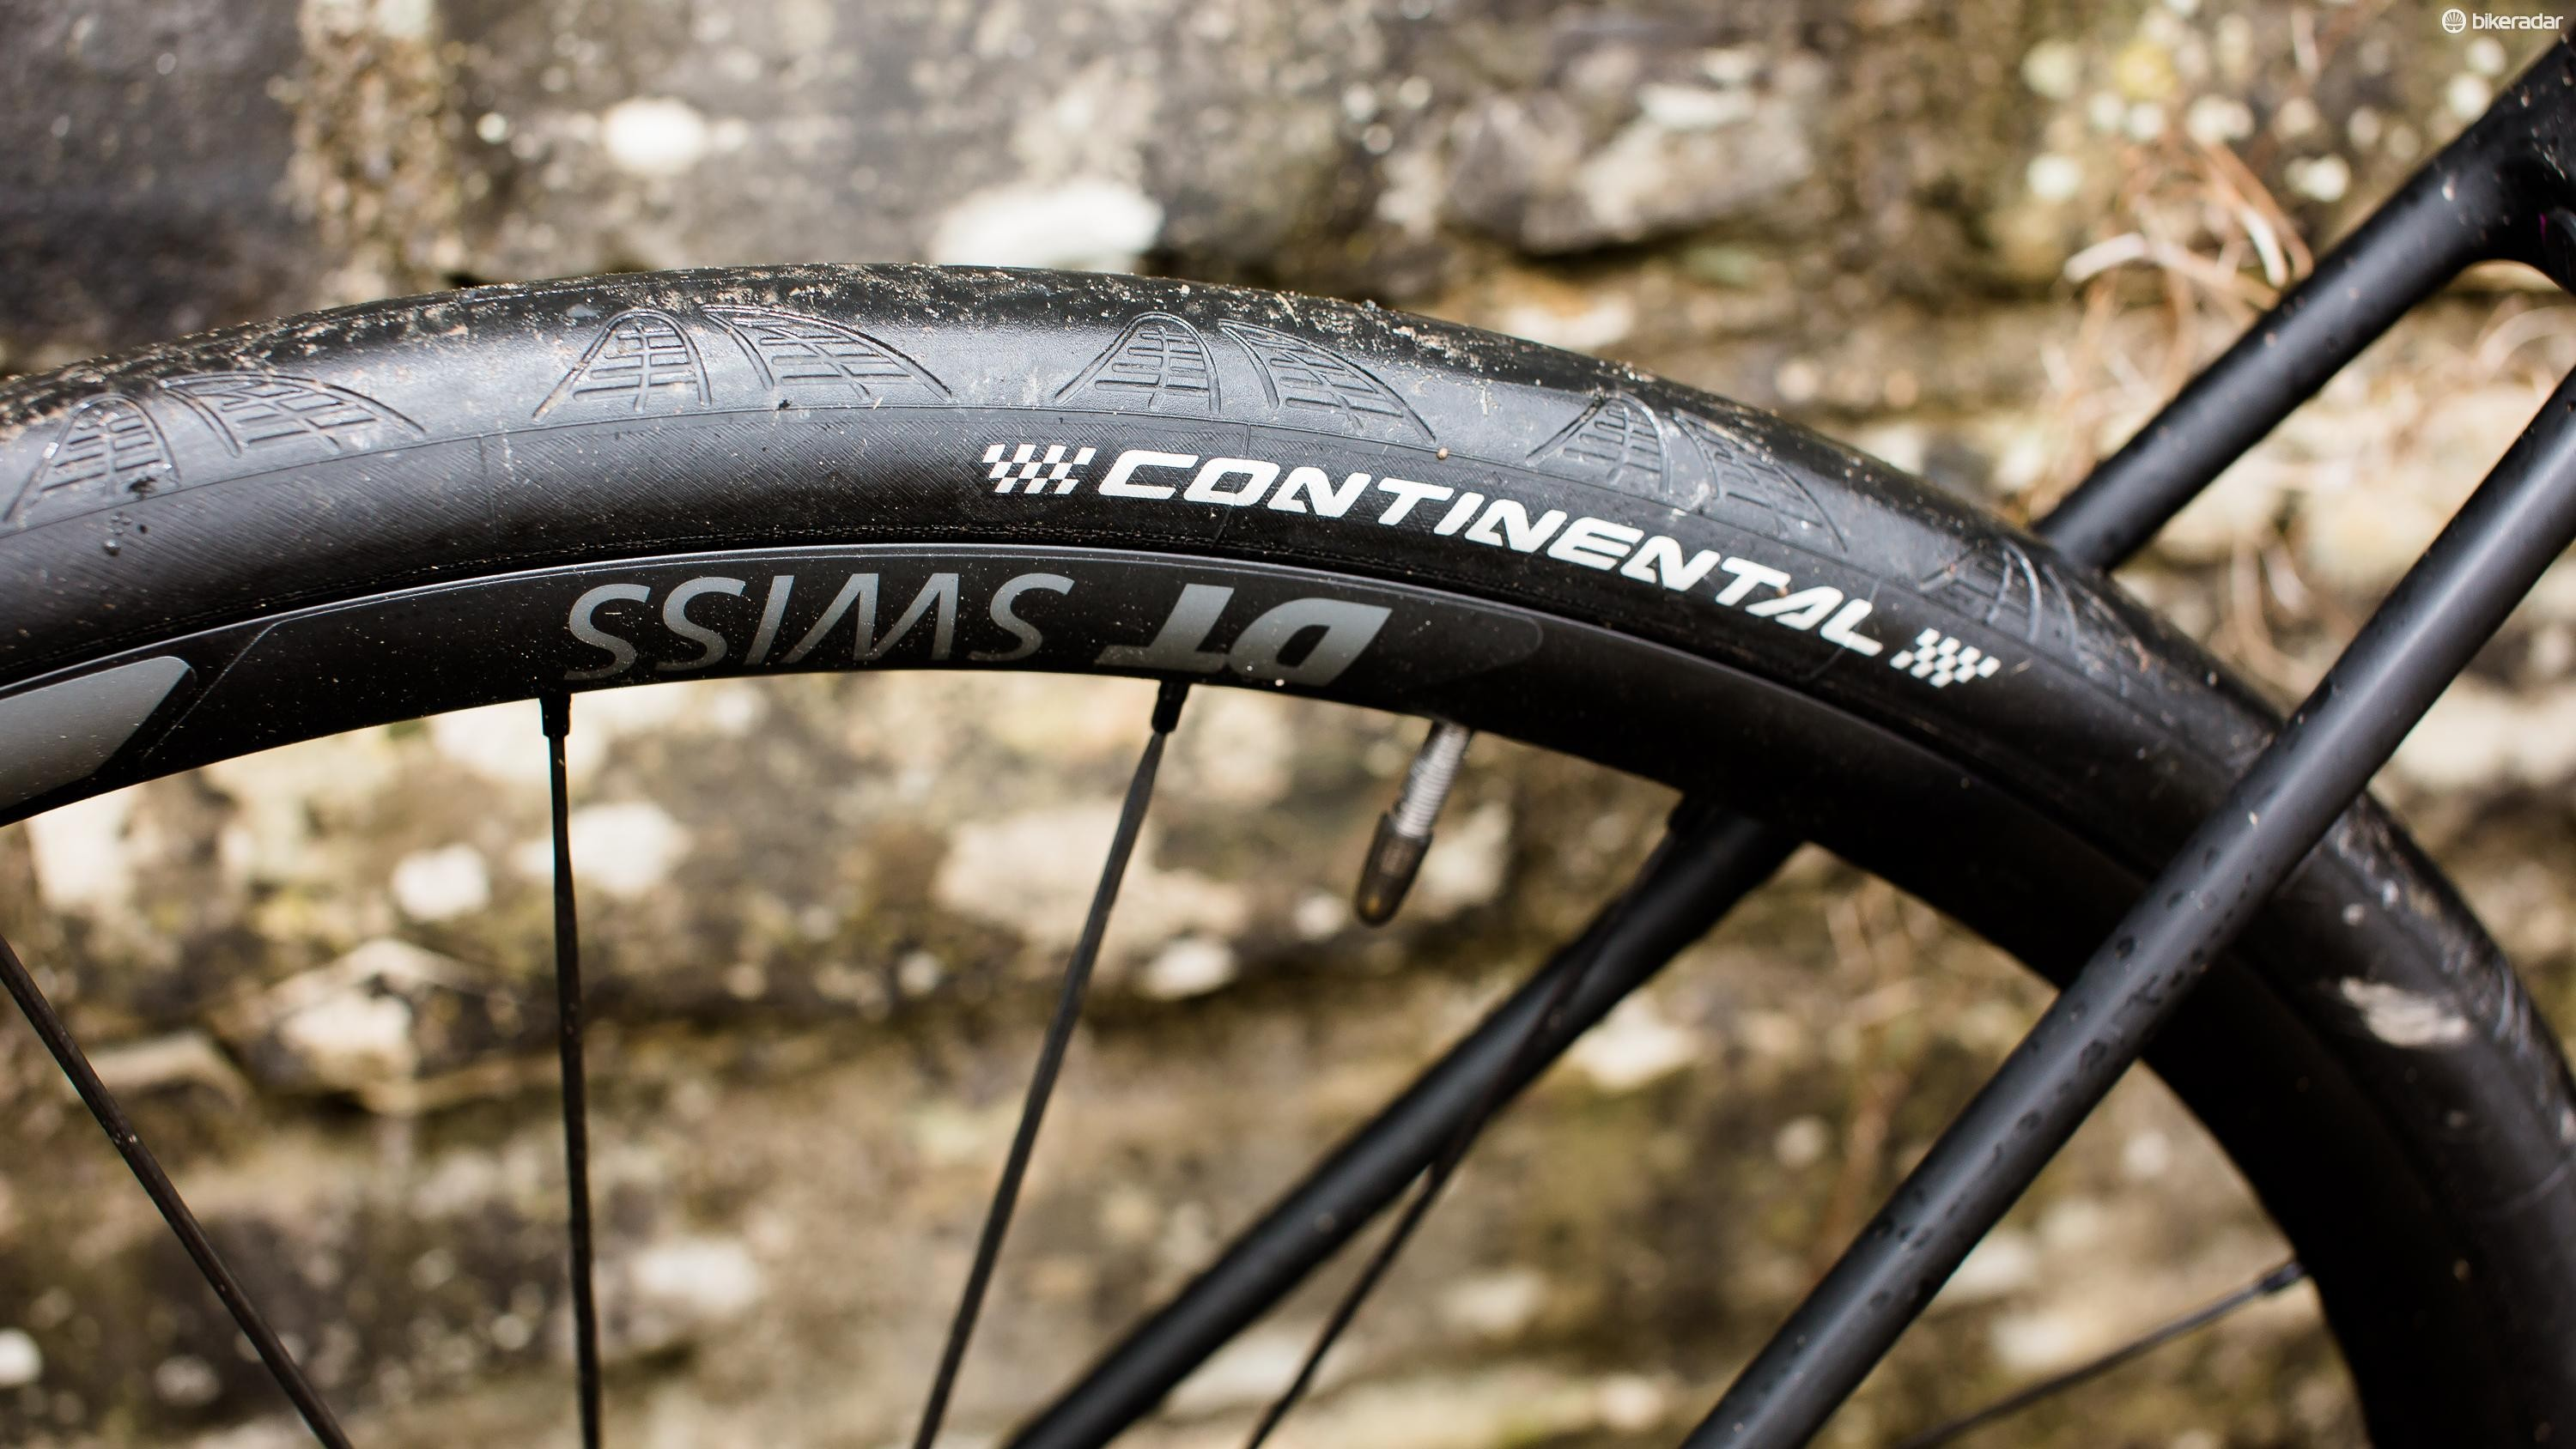 An impressive pairing of DT Swiss wheels and Continental tyres